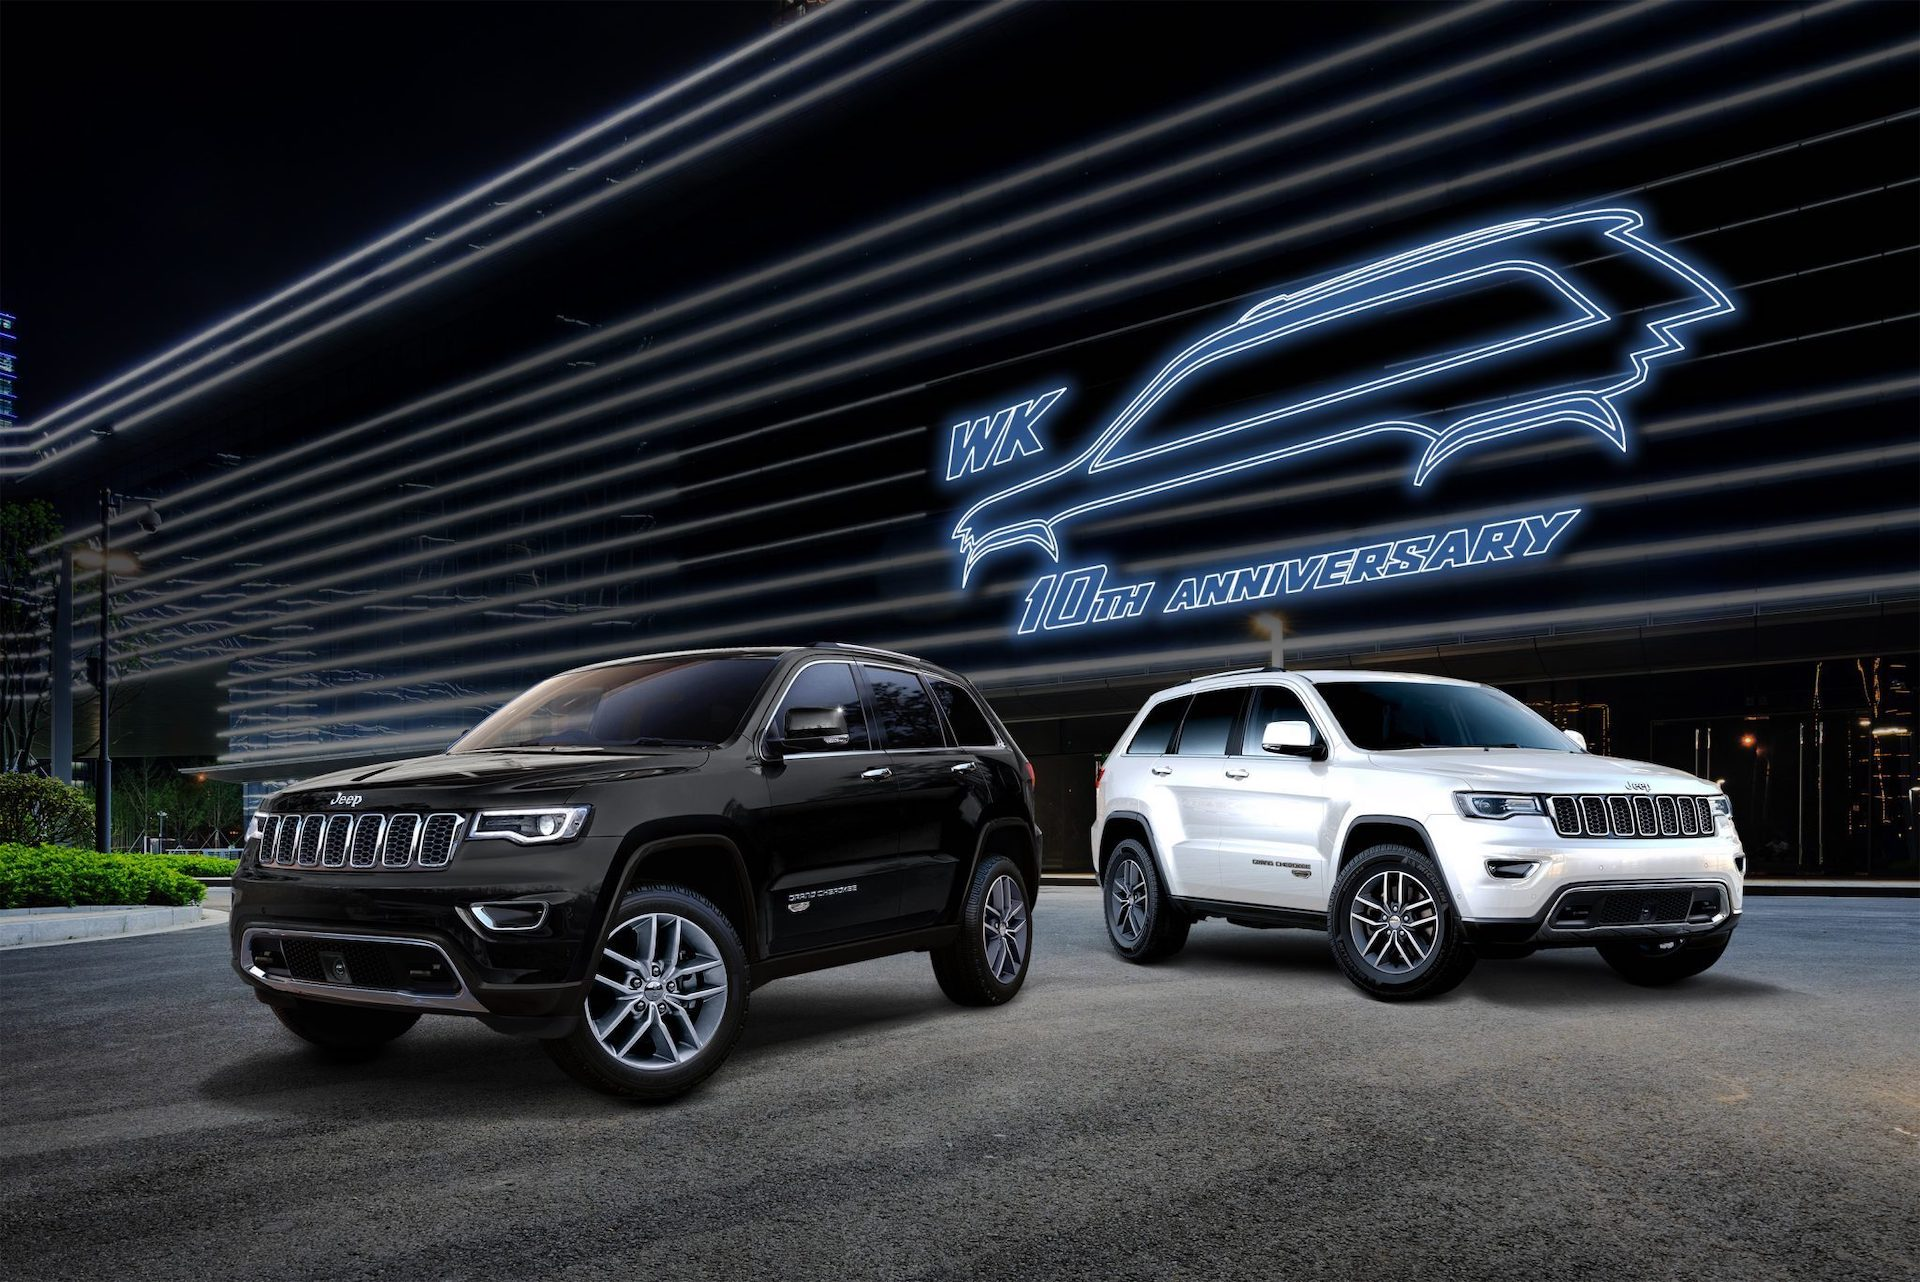 Jeep Grand Cherokee WK 10th Anniversary Edition